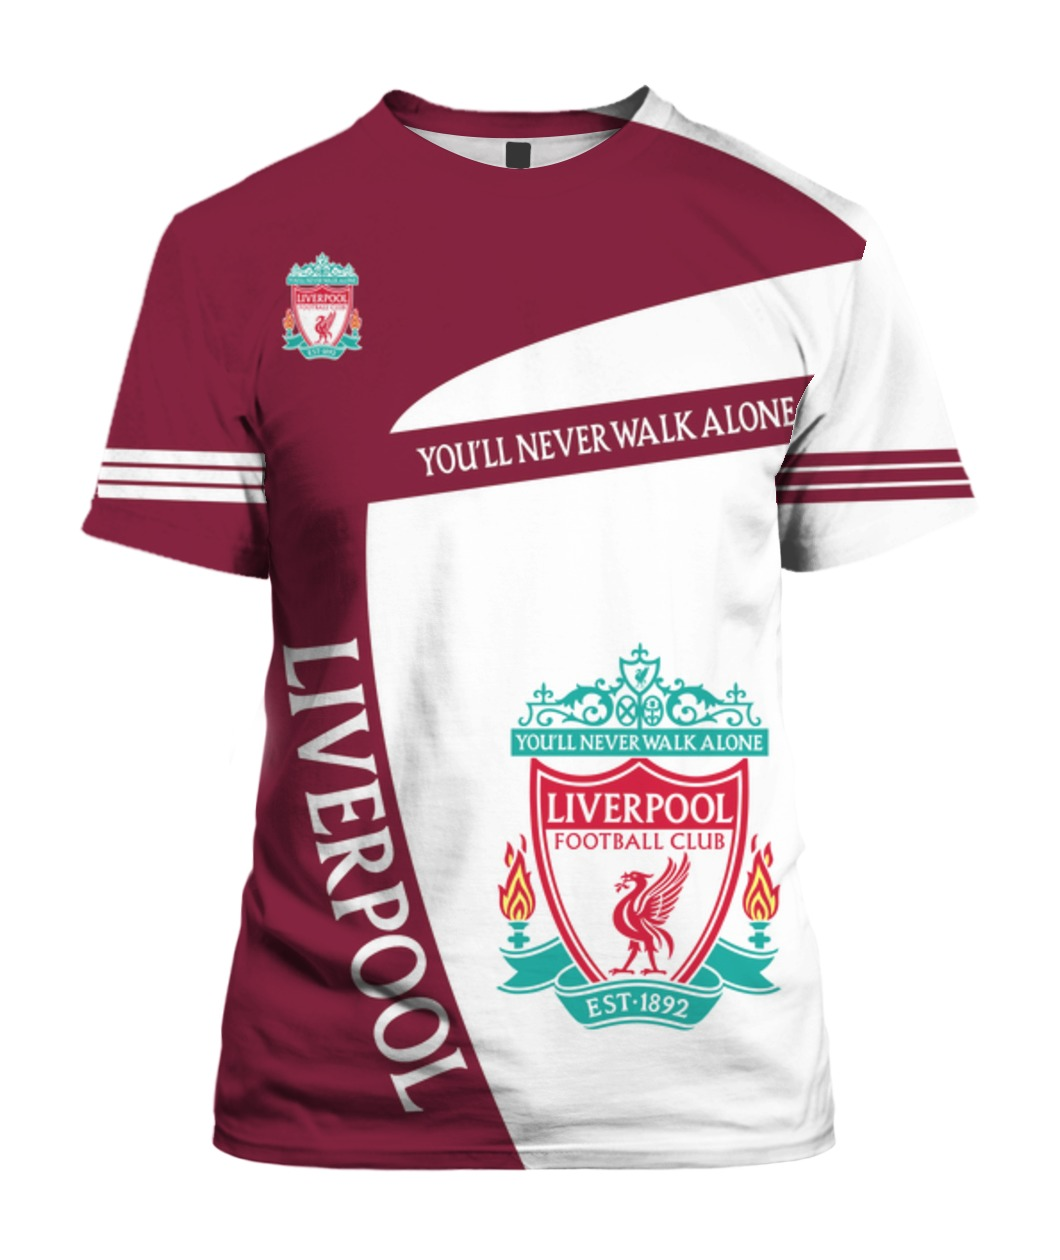 You'll never walk alone liverpool football club all over print shirt - front